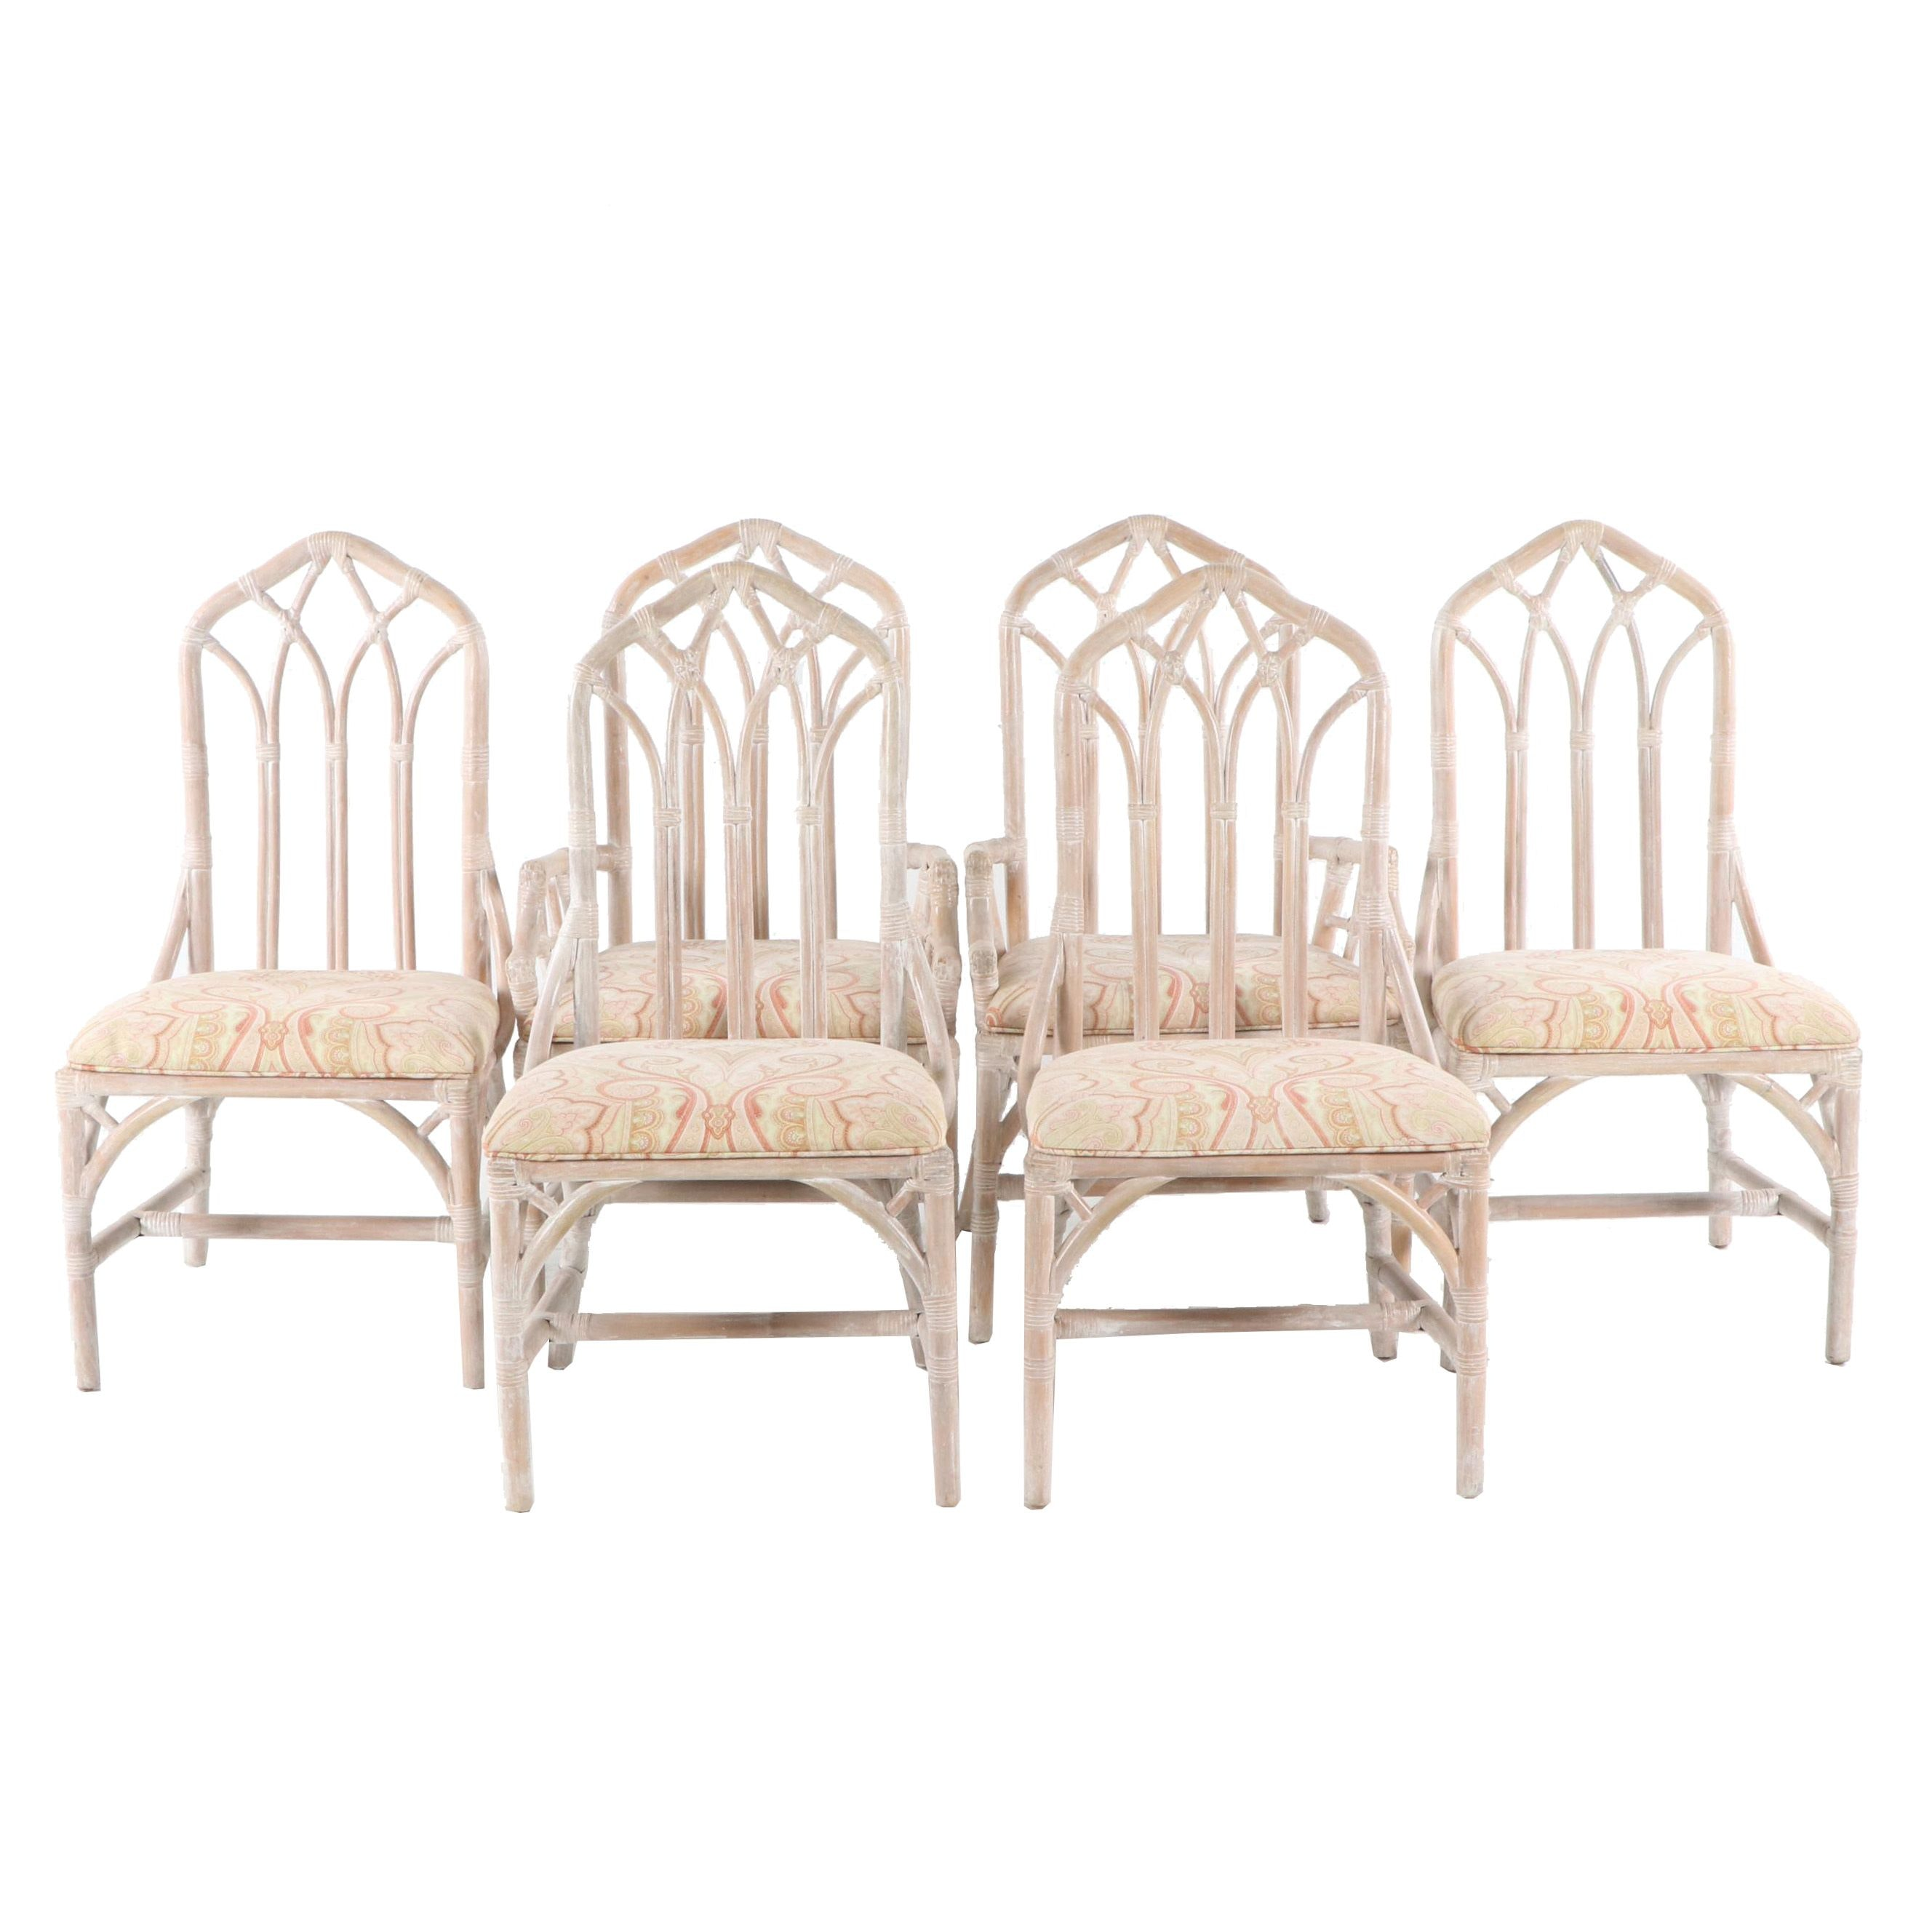 Upholstered White Washed Rattan Dining Chairs